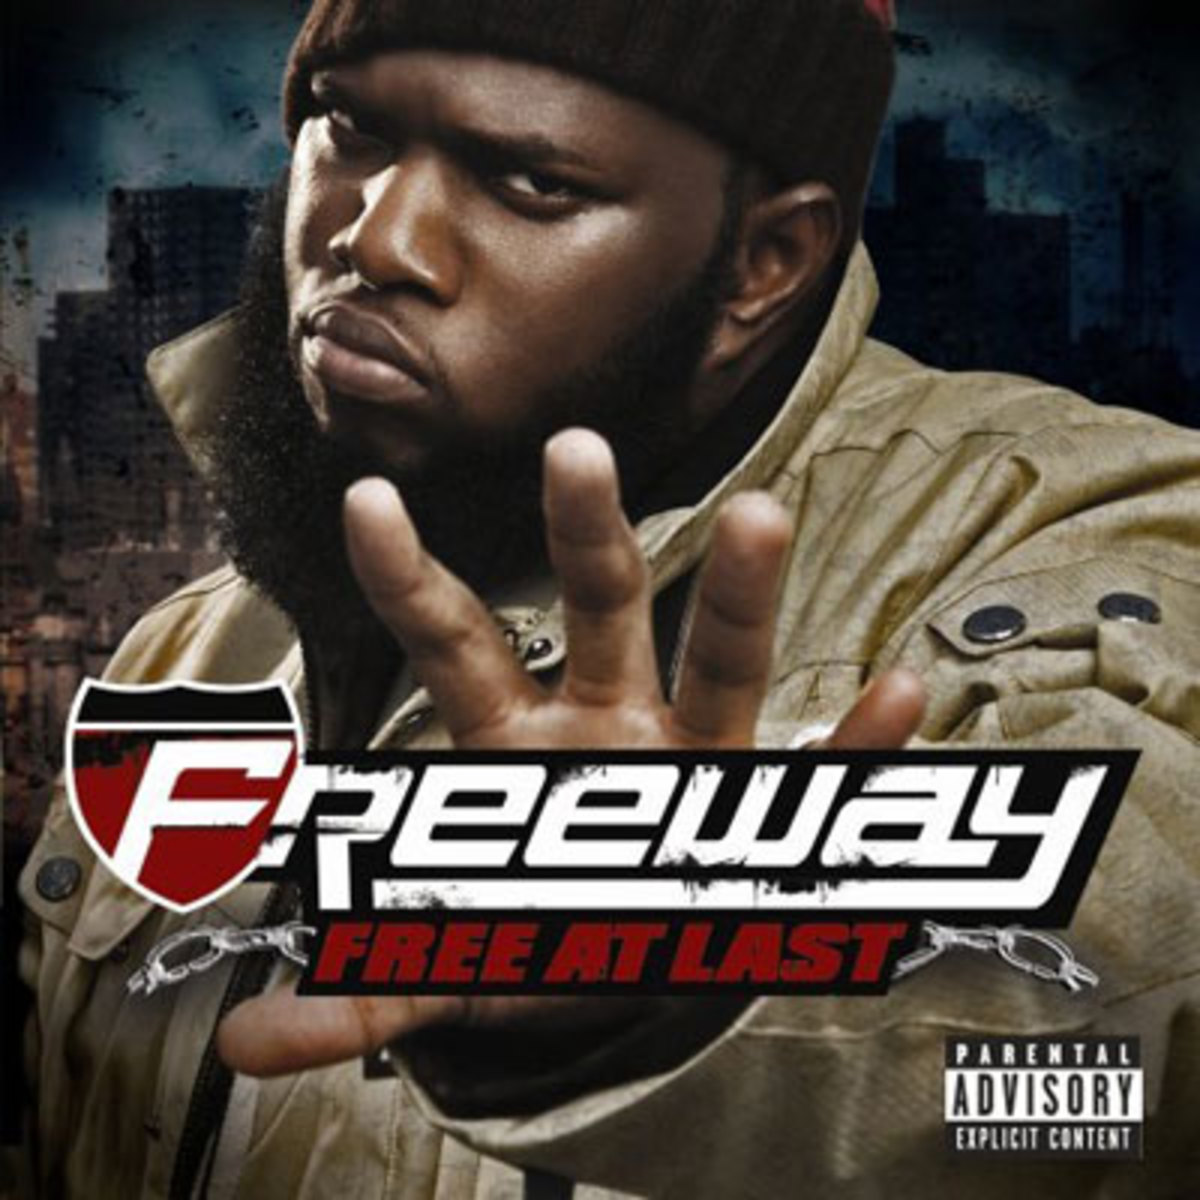 freeway-freeatlast.jpg